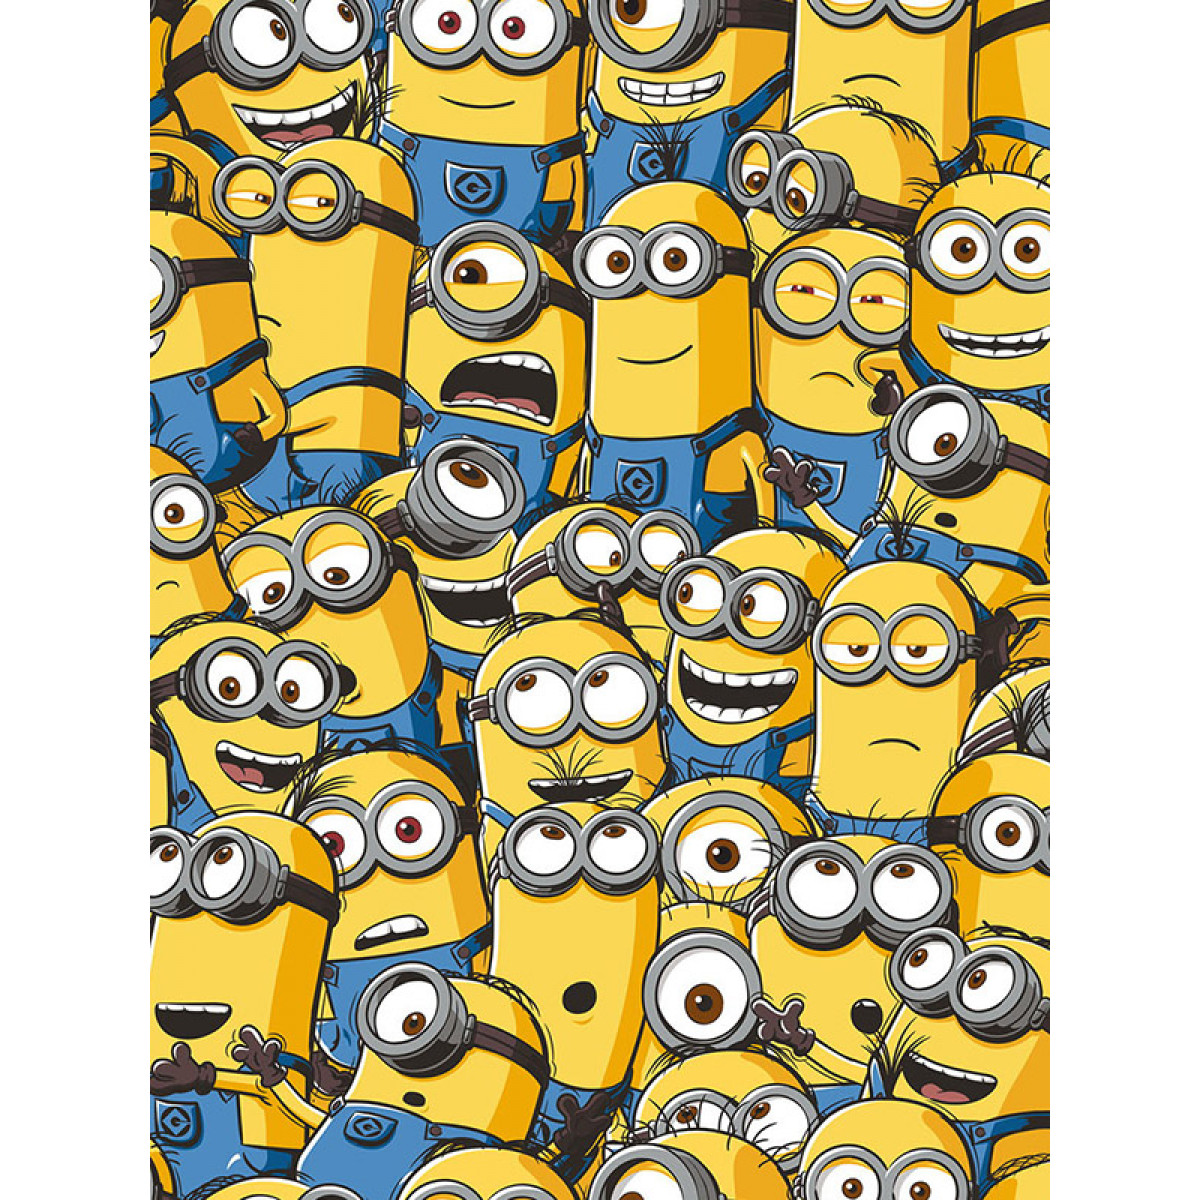 Despicable Me Sea Of Minions Wallpaper Bedroom Bedding